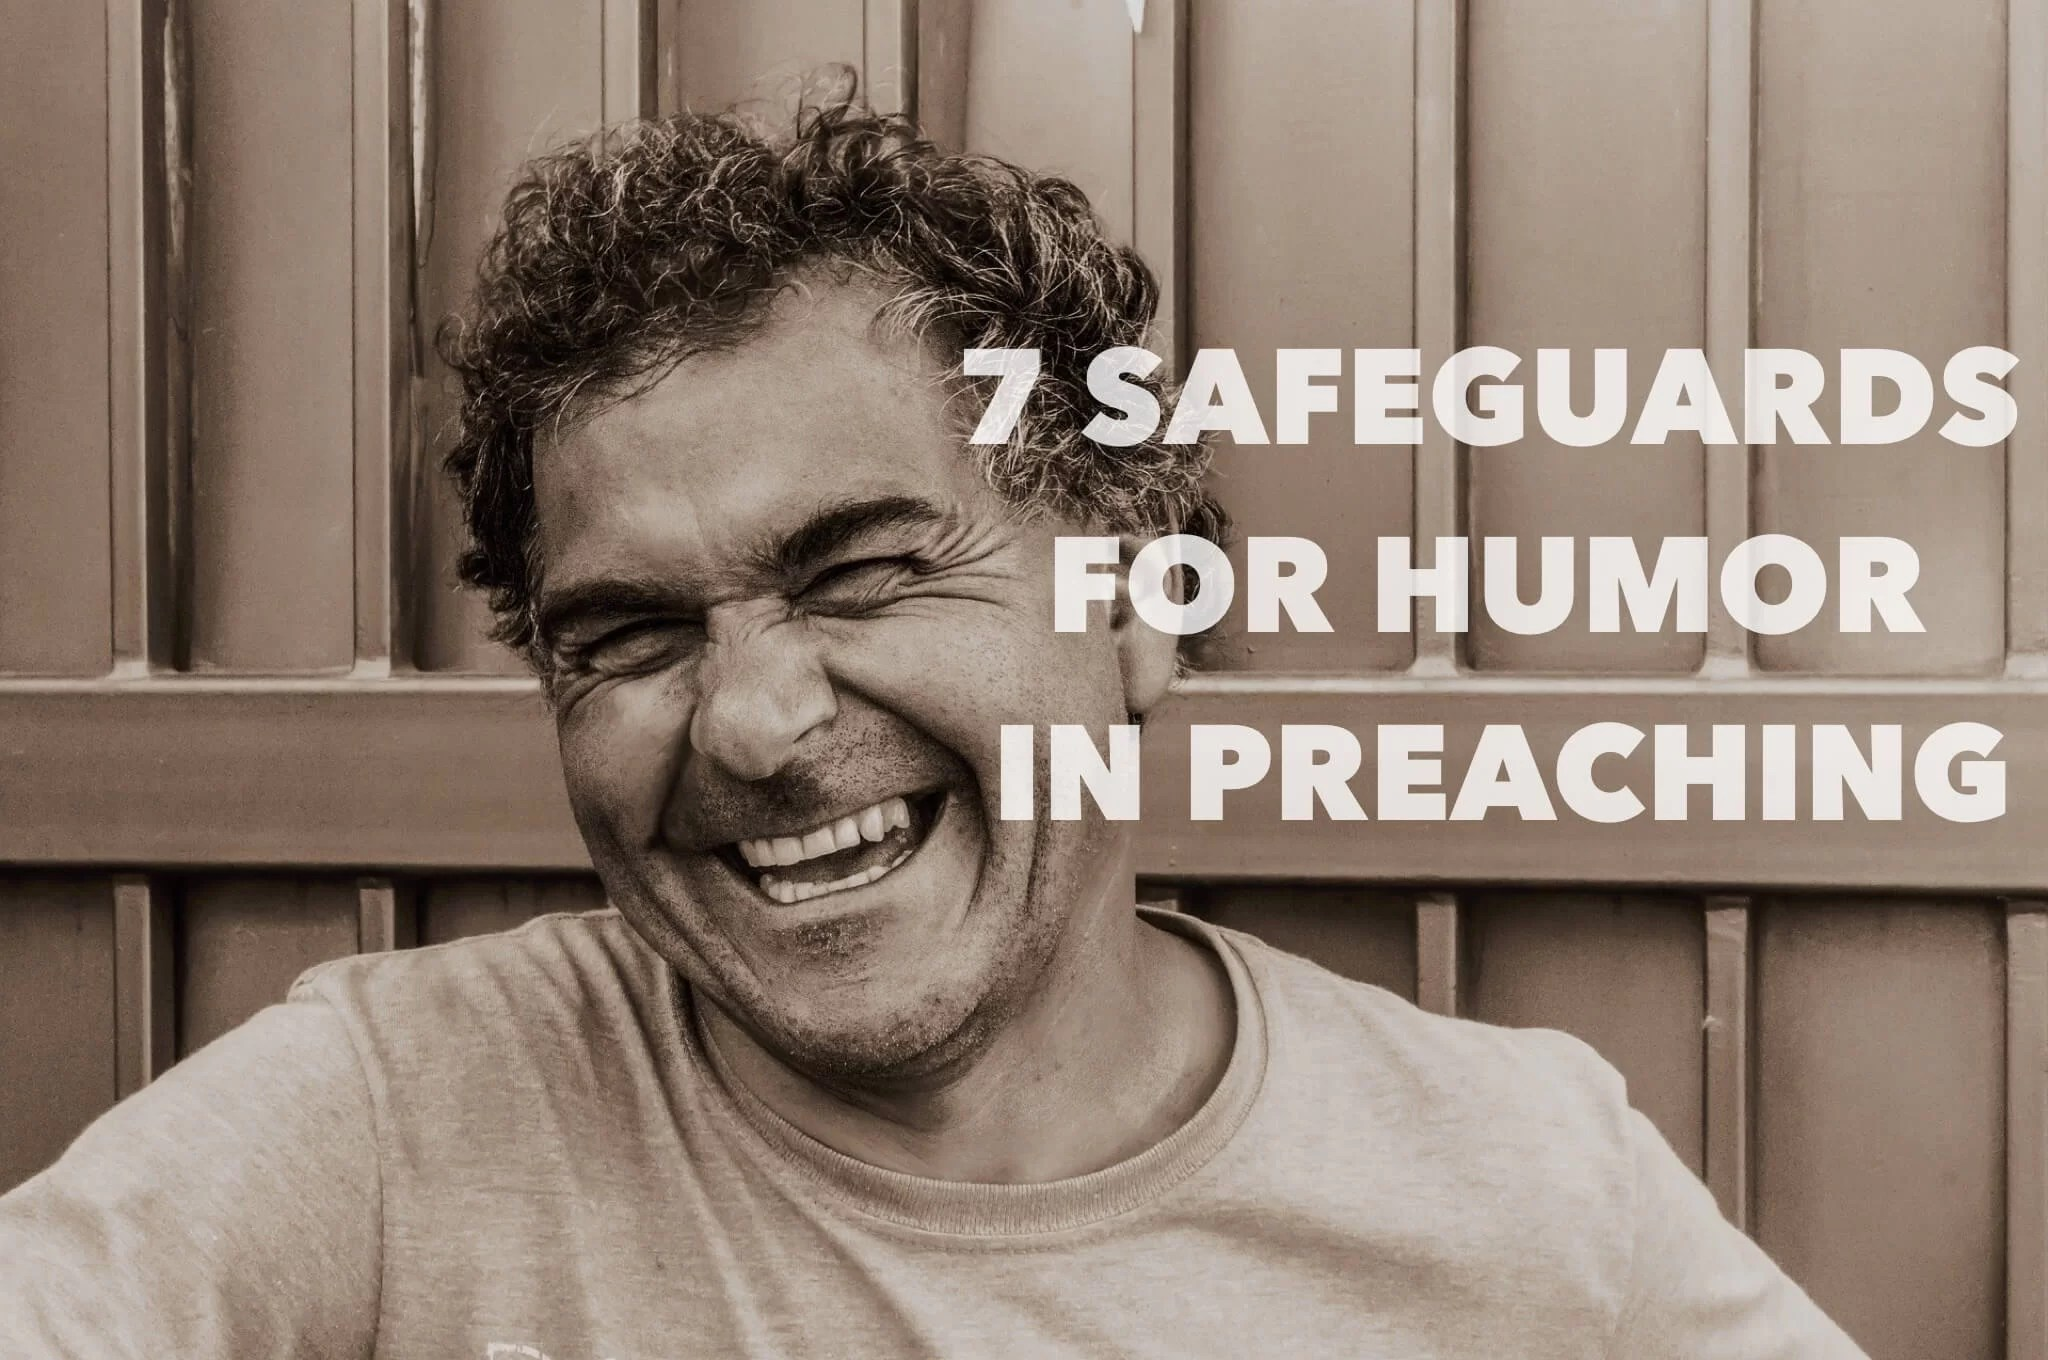 7 Safeguards for Humor in Preaching